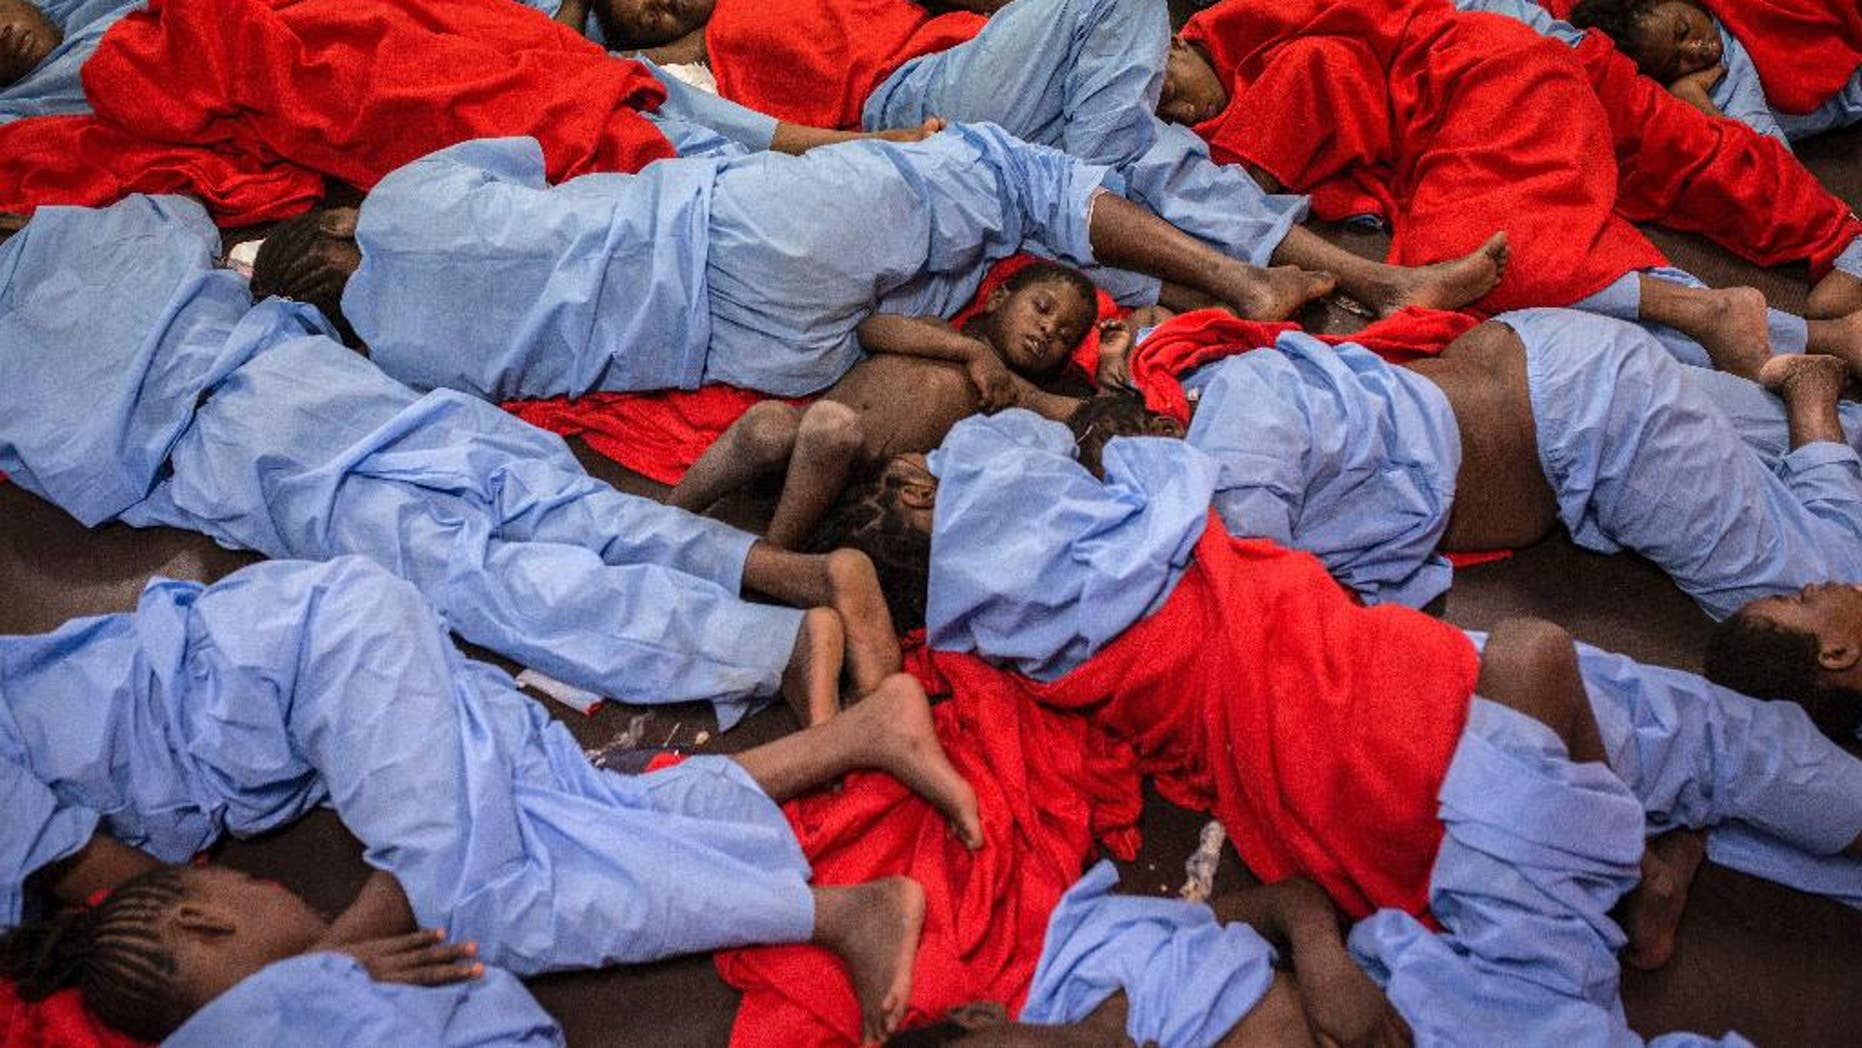 In this Friday Jan. 13, 2017 photo, Idris 3, from Mali, center, sleeps next to his mother Aicha Keita, right, on the deck of the Golfo Azzurro vessel after being rescued from the Mediterranean sea, about 20 miles north of Ra's Tajura, Libya. Spain's maritime rescue service says the bodies of seven African migrants have been found dead along the Strait of Gibraltar since Friday. (AP Photo/Olmo Calvo)